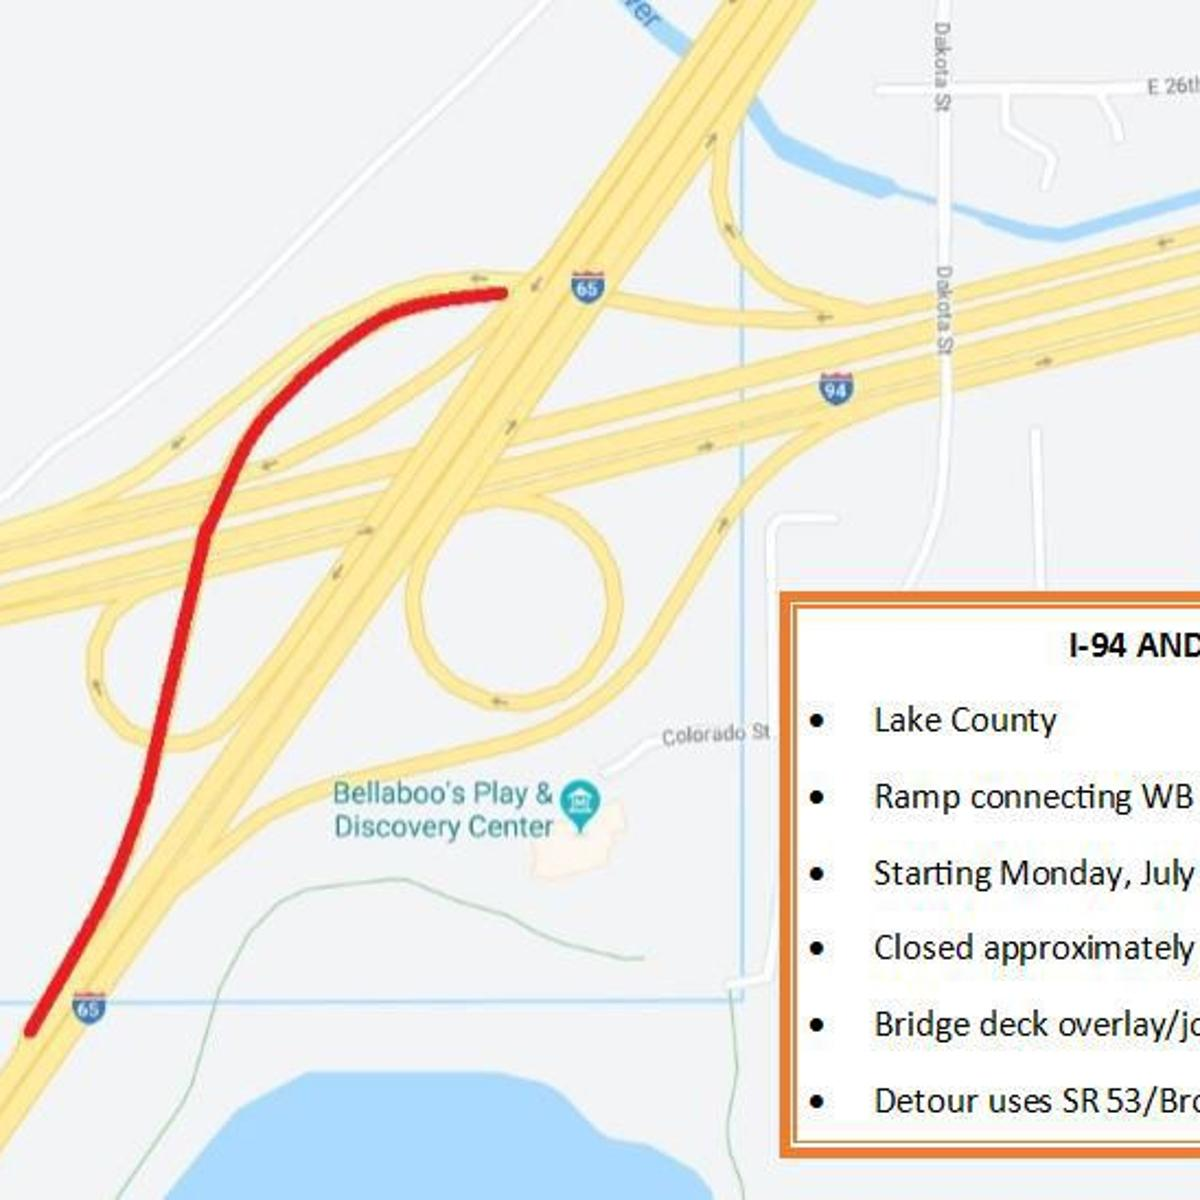 Start of one-week ramp closure at I-80/94 and I-65 moved to